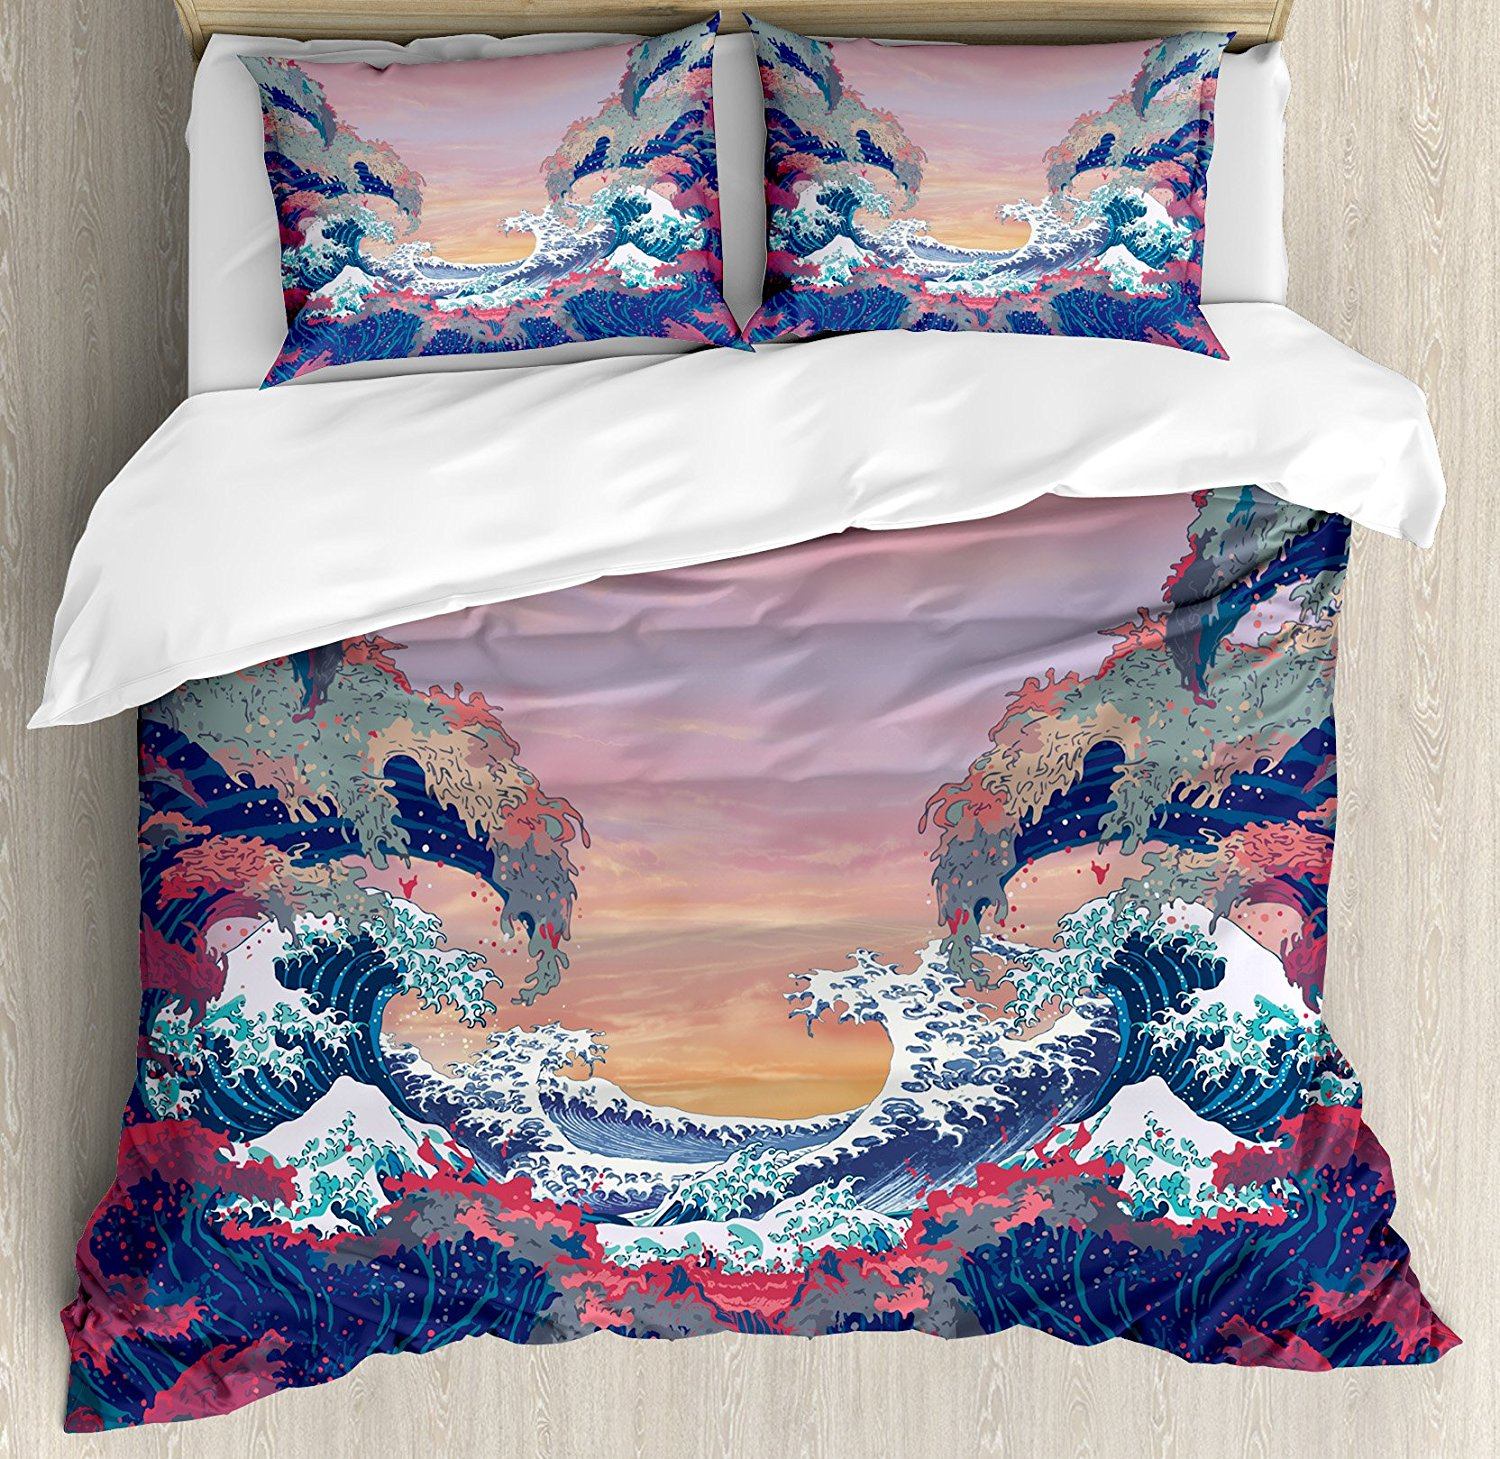 Ambesonne Modern Duvet Cover Set King Size, Colorful Fantasy Sea Waves Ocean Modern Fictional Nautical Magic Artsy Illustration, Decorative 3 Piece Bedding Set with 2 Pillow Shams, Multicolor